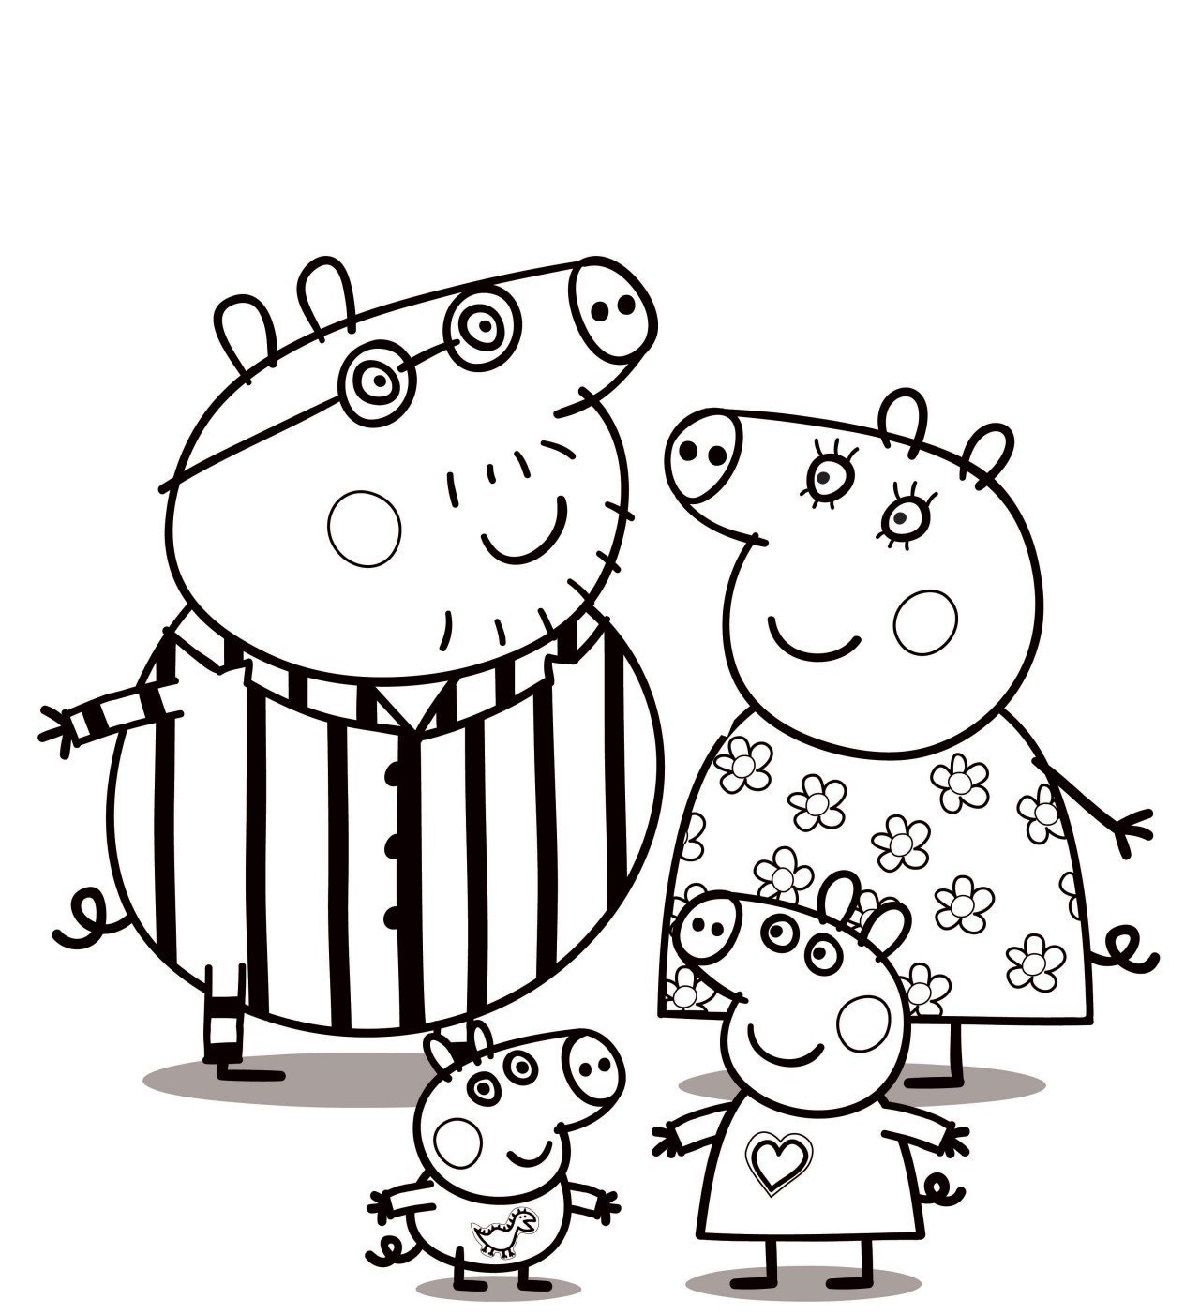 Give Your Favorite Peppa Pig Picture Some Color With Our Peppa Pig Coloring Pages In 2020 Peppa Pig Coloring Pages Peppa Pig Colouring Christmas Present Coloring Pages